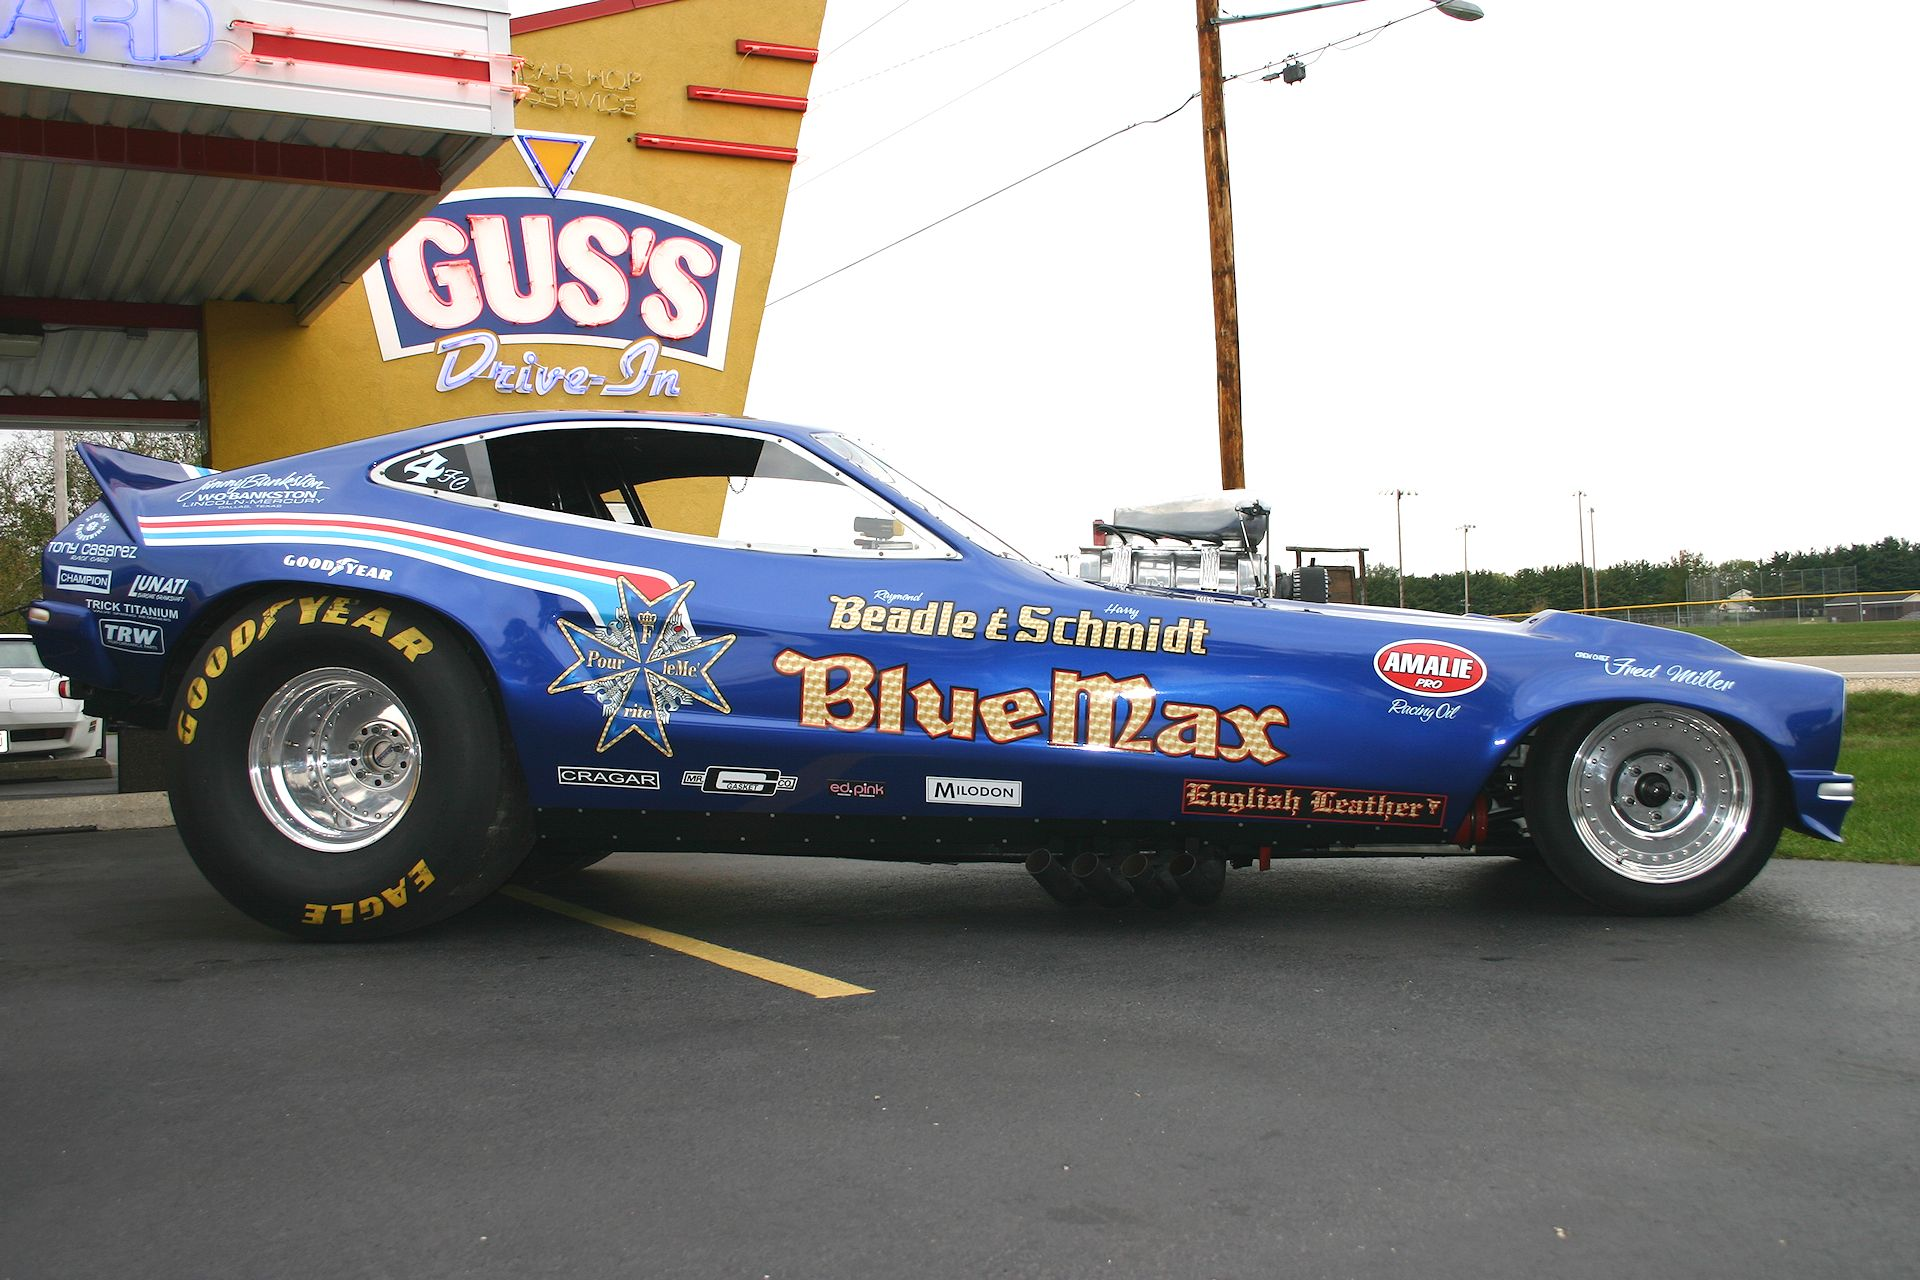 ... funny_nhra_drag_racing_race_hot_rod_rods_BLUE_MAX_ford_mustang_g.html